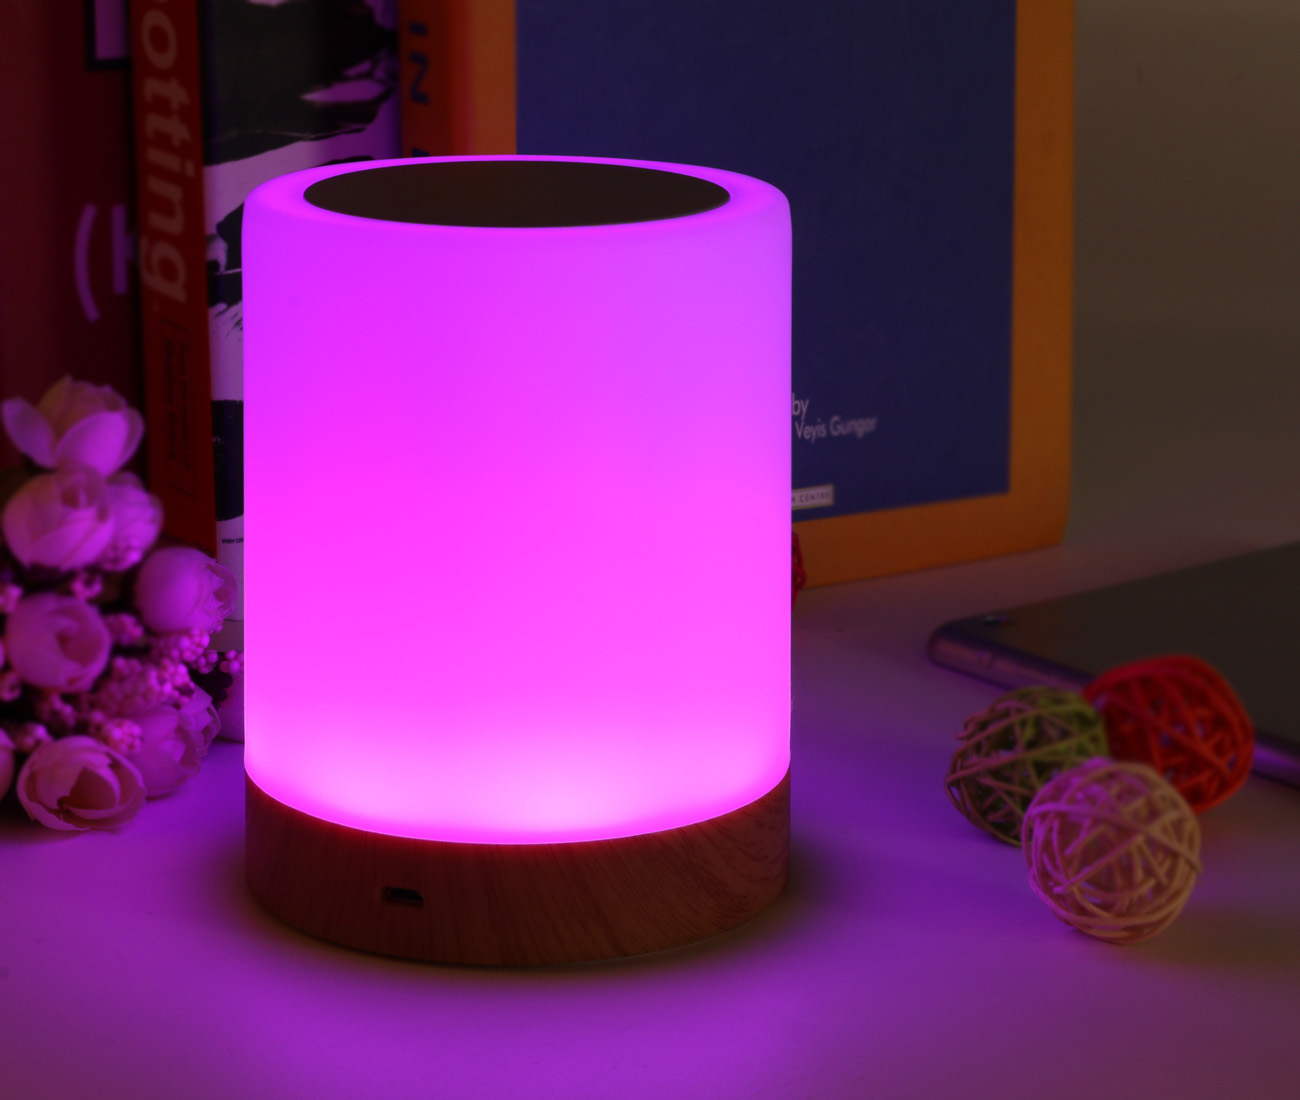 Led toys desk lamp toilet night light for kids, children, adults